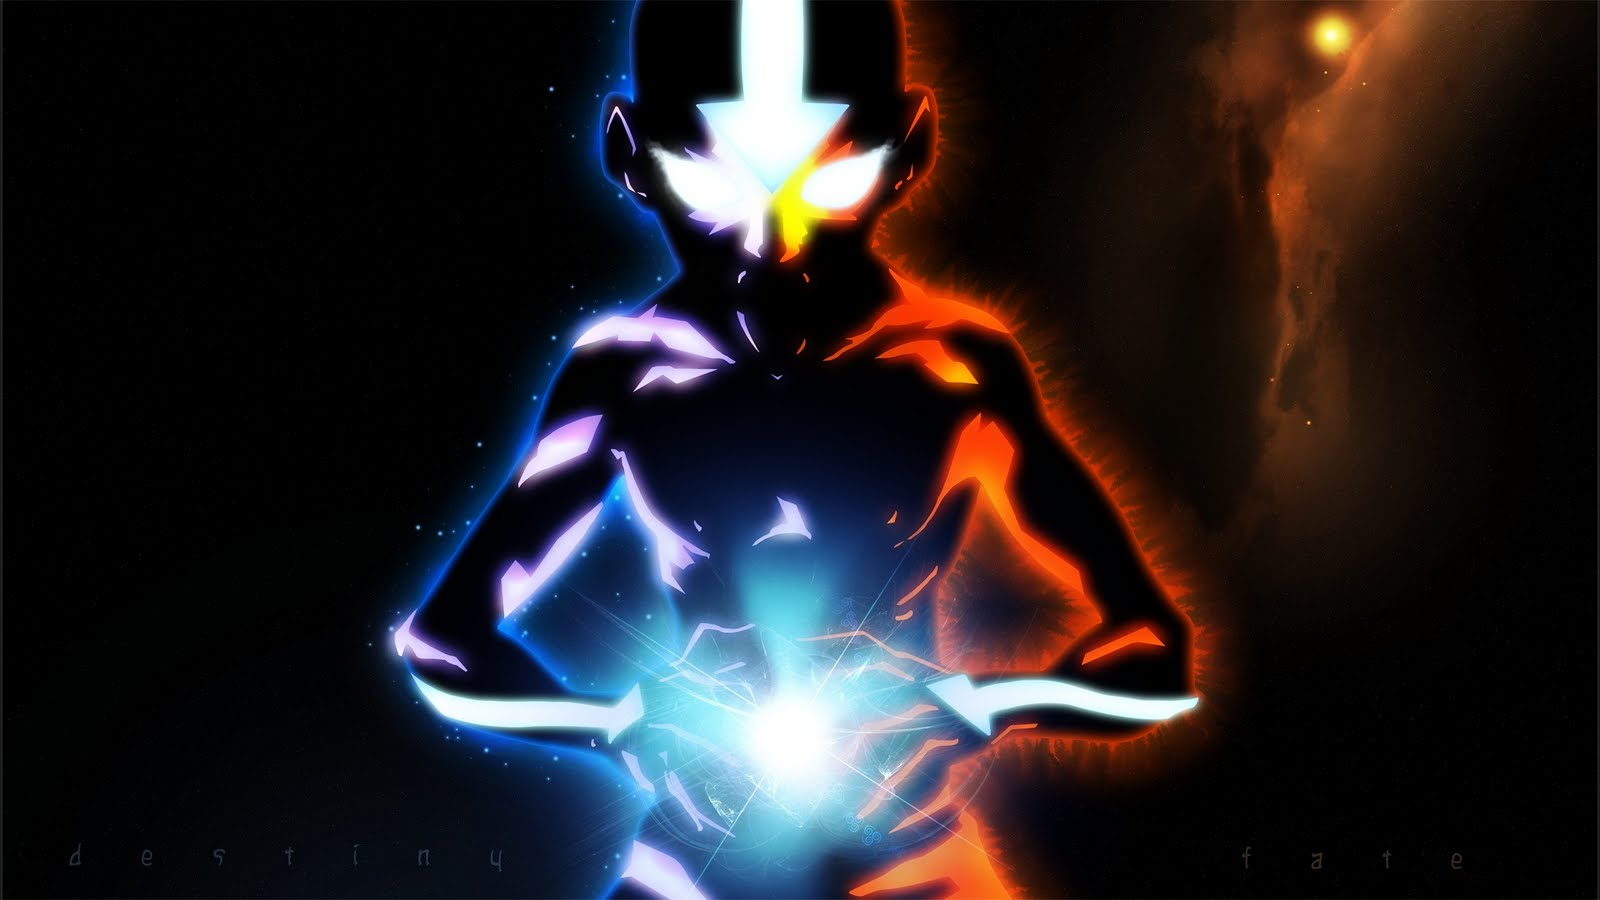 Wallpaper De Avatar Aang Dwitongelu